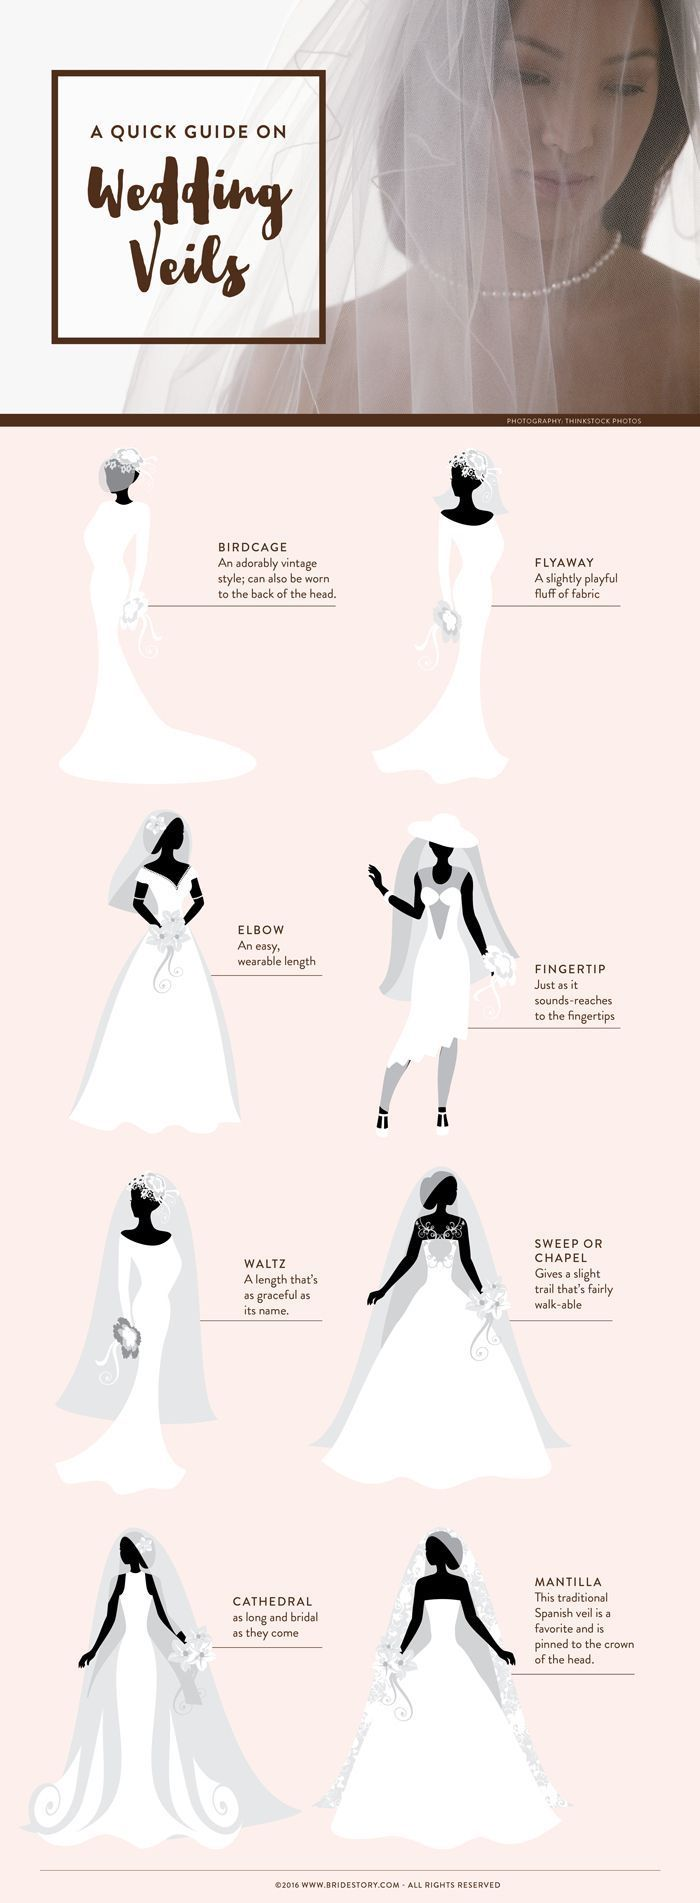 Unsure of the name for a wedding veil style? This wedding veil ...